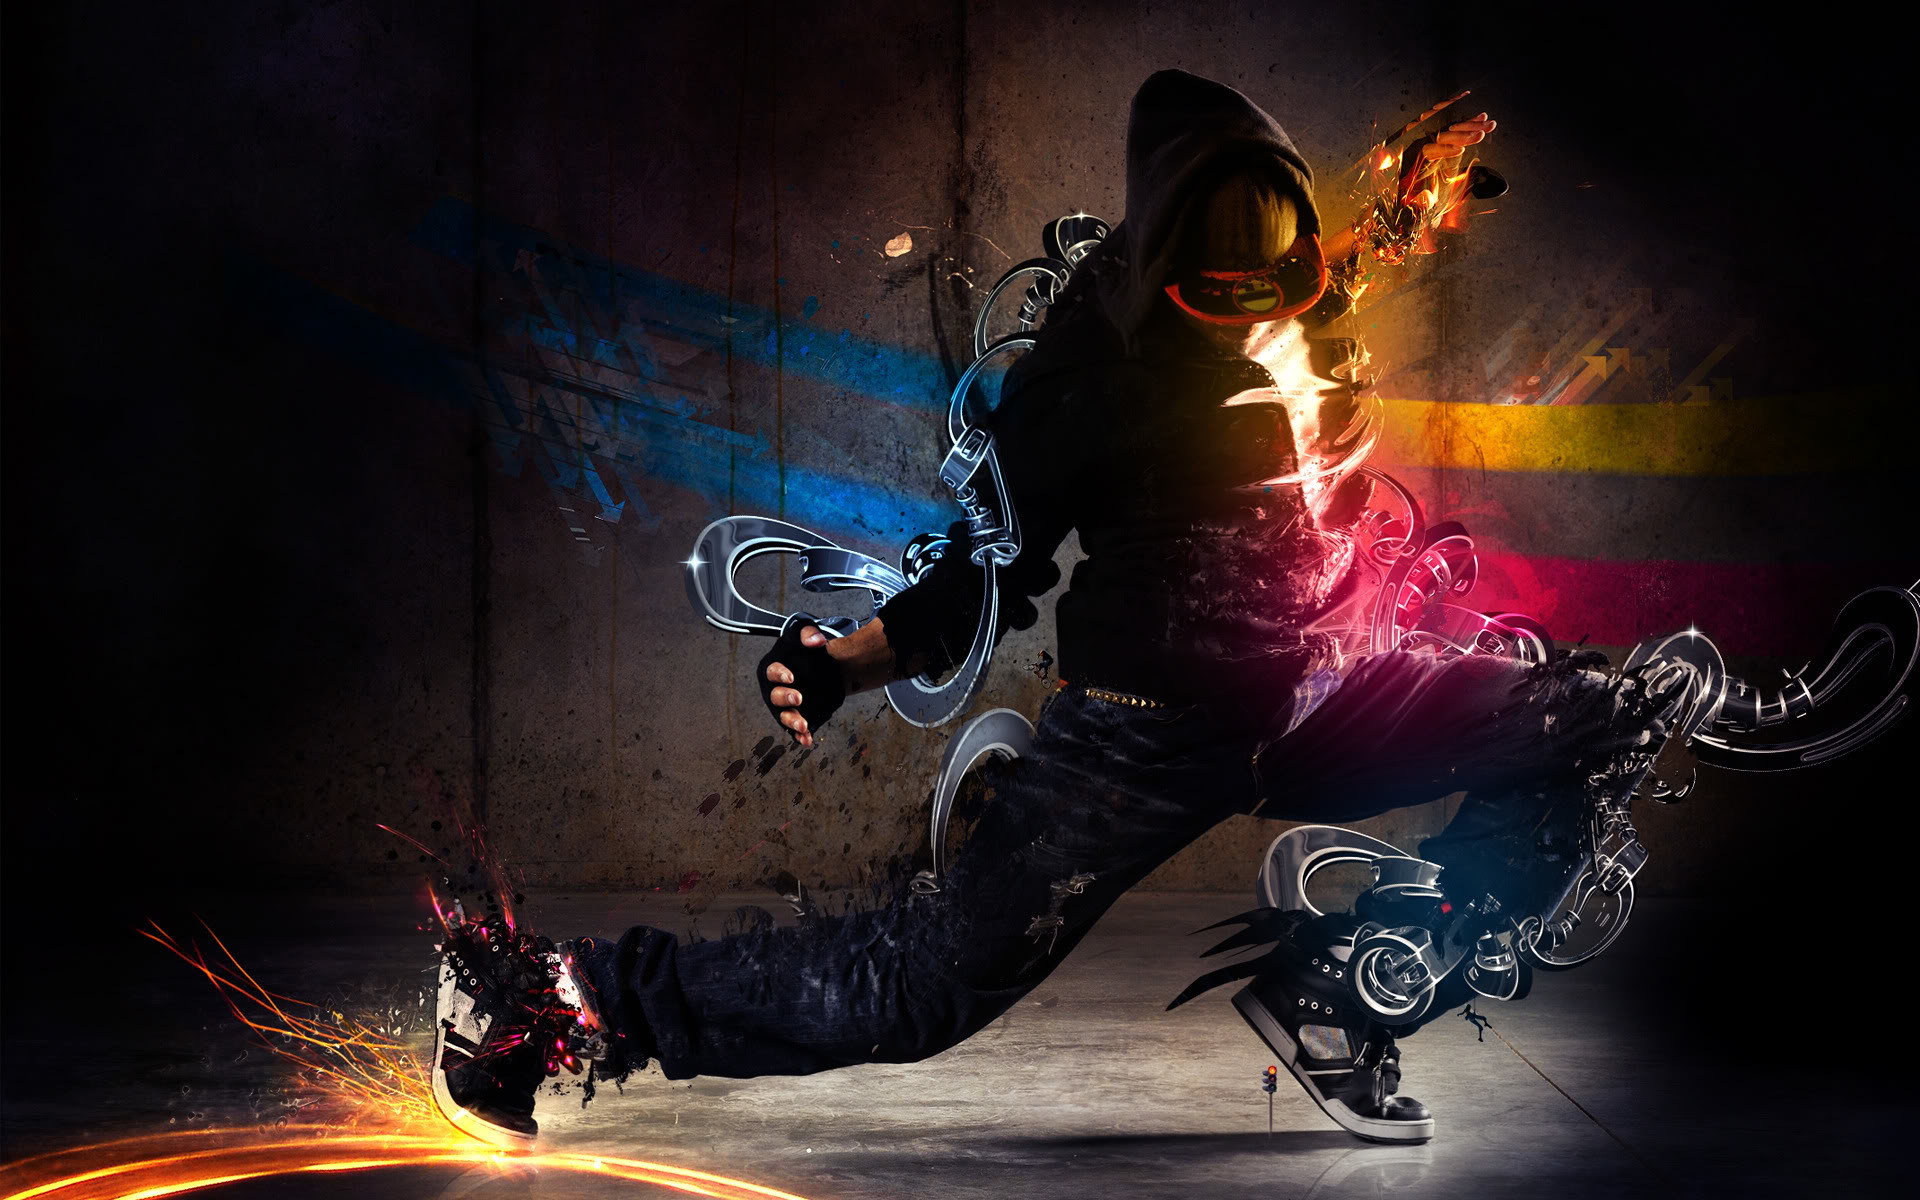 1920x1200 Download Cool HD Wallpapers For Boys Break Dance pictures in high .